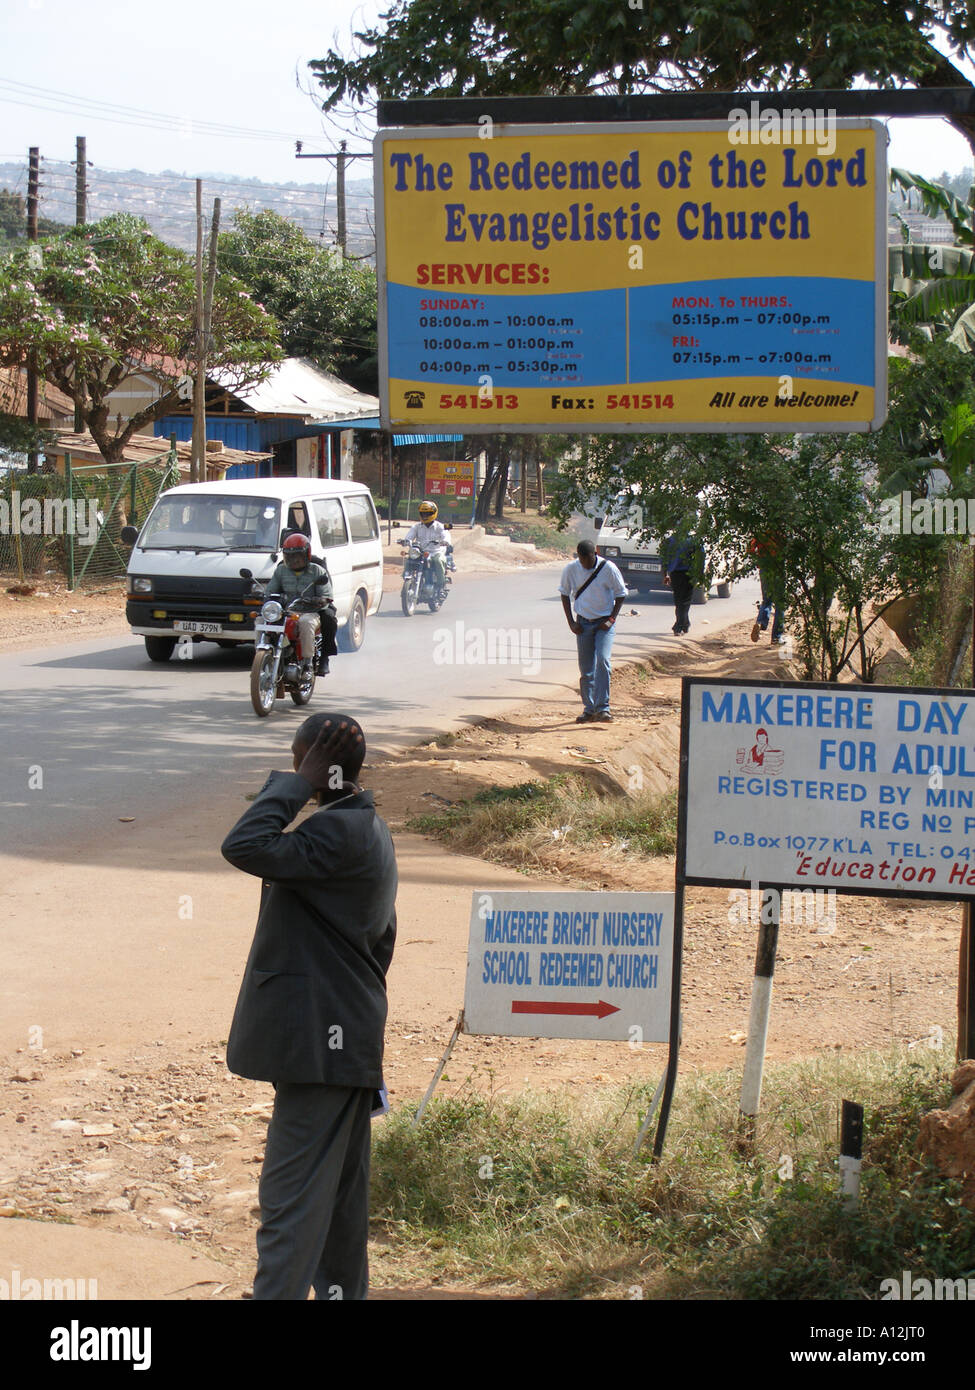 Sign for The Redeemed of the Lord Evangelistic Church among others on a Kampala road, Uganda - Stock Image